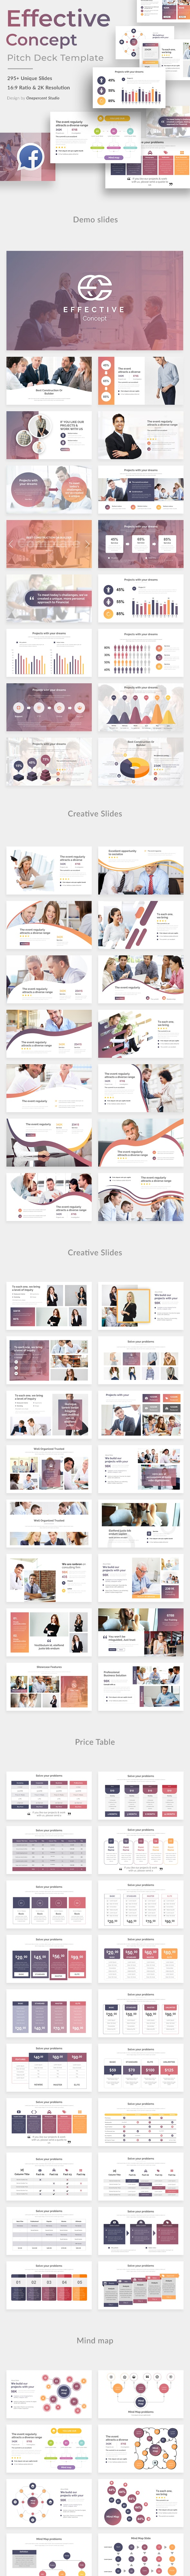 Effective Concept Pitch Deck Keynote Template - Business Keynote Templates